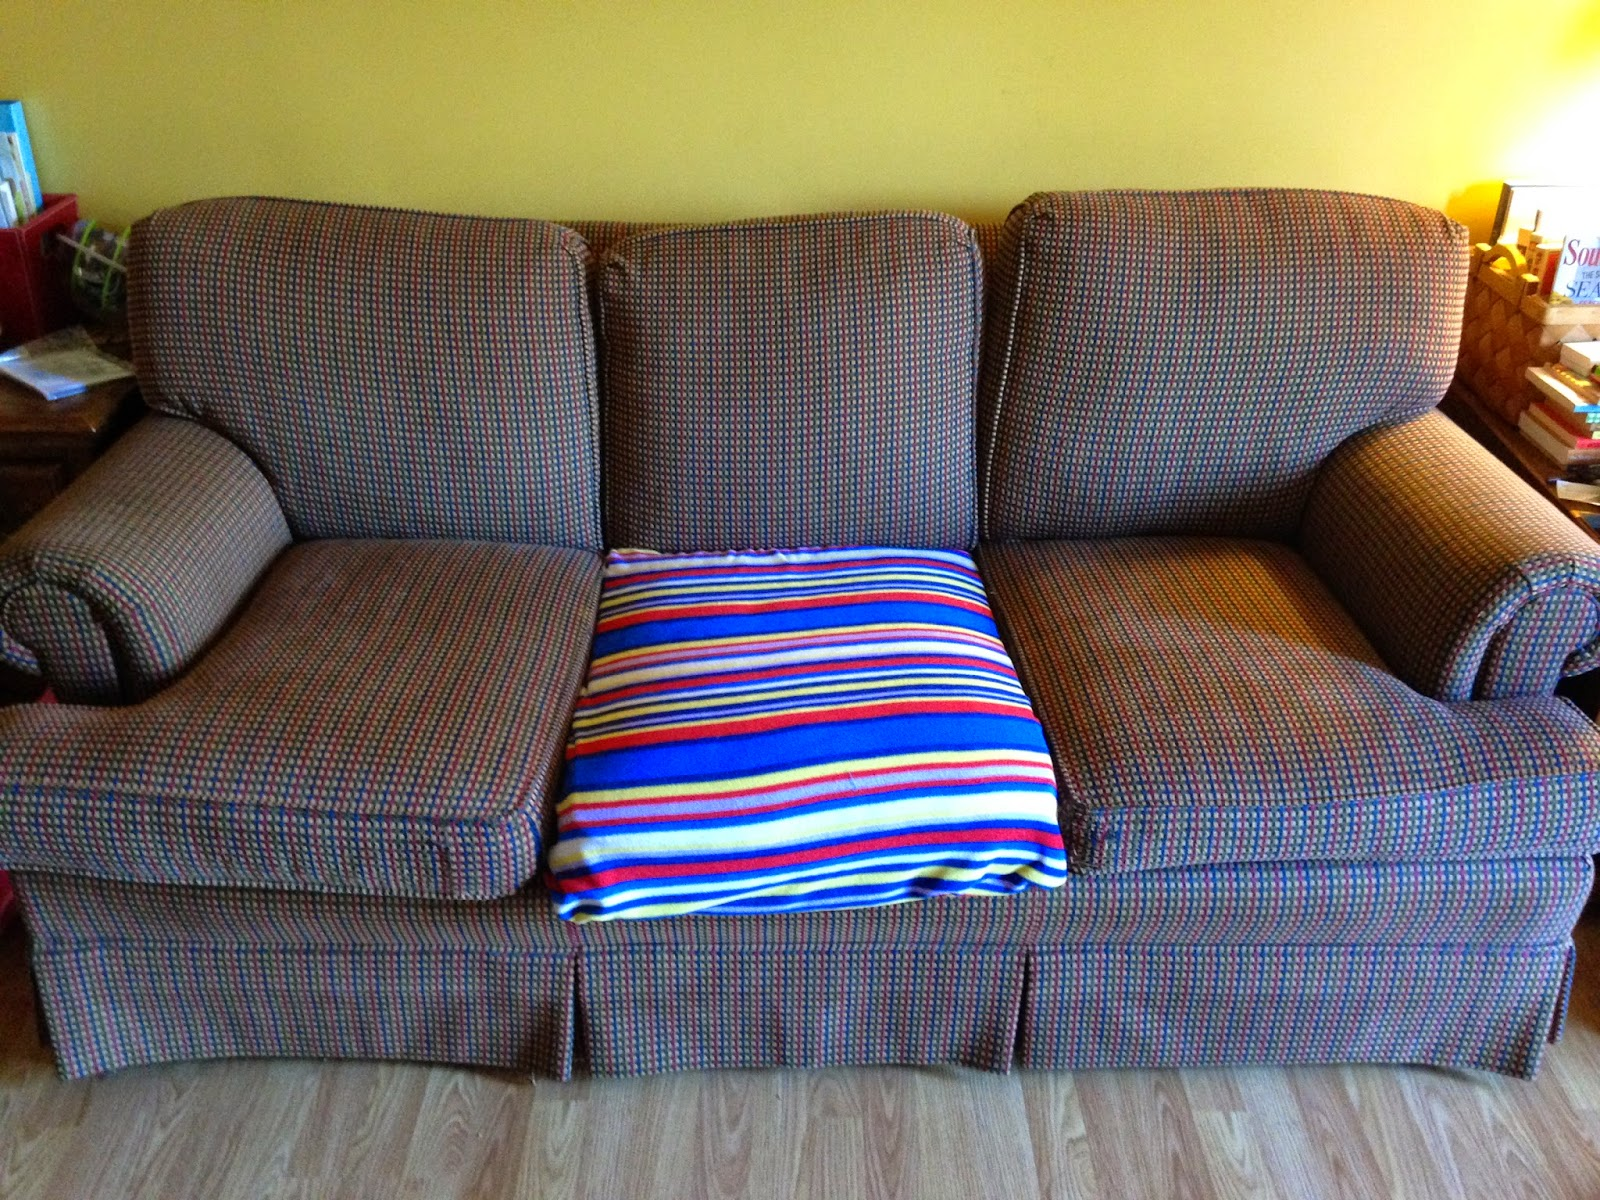 how to fix sofa back cushions outdoor wicker sectional babyfingers quick and easy 15 minute for damaged